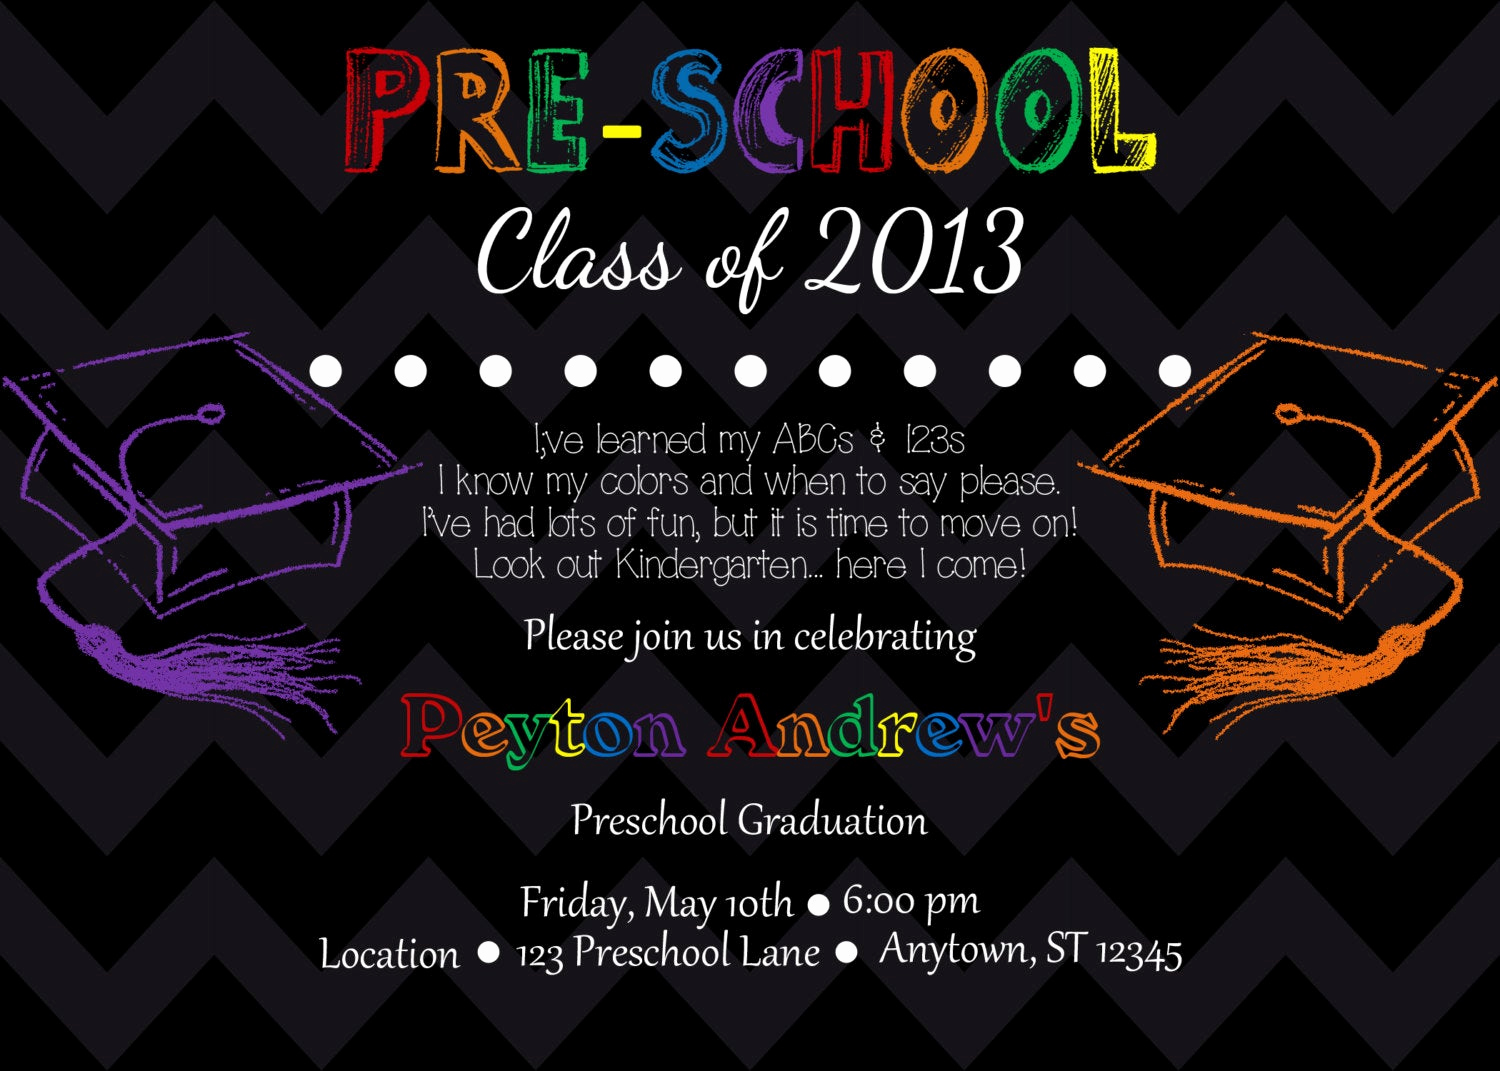 Kindergarten Graduation Invitation Template Luxury Preschool Kindergarten Graduation Invitation by